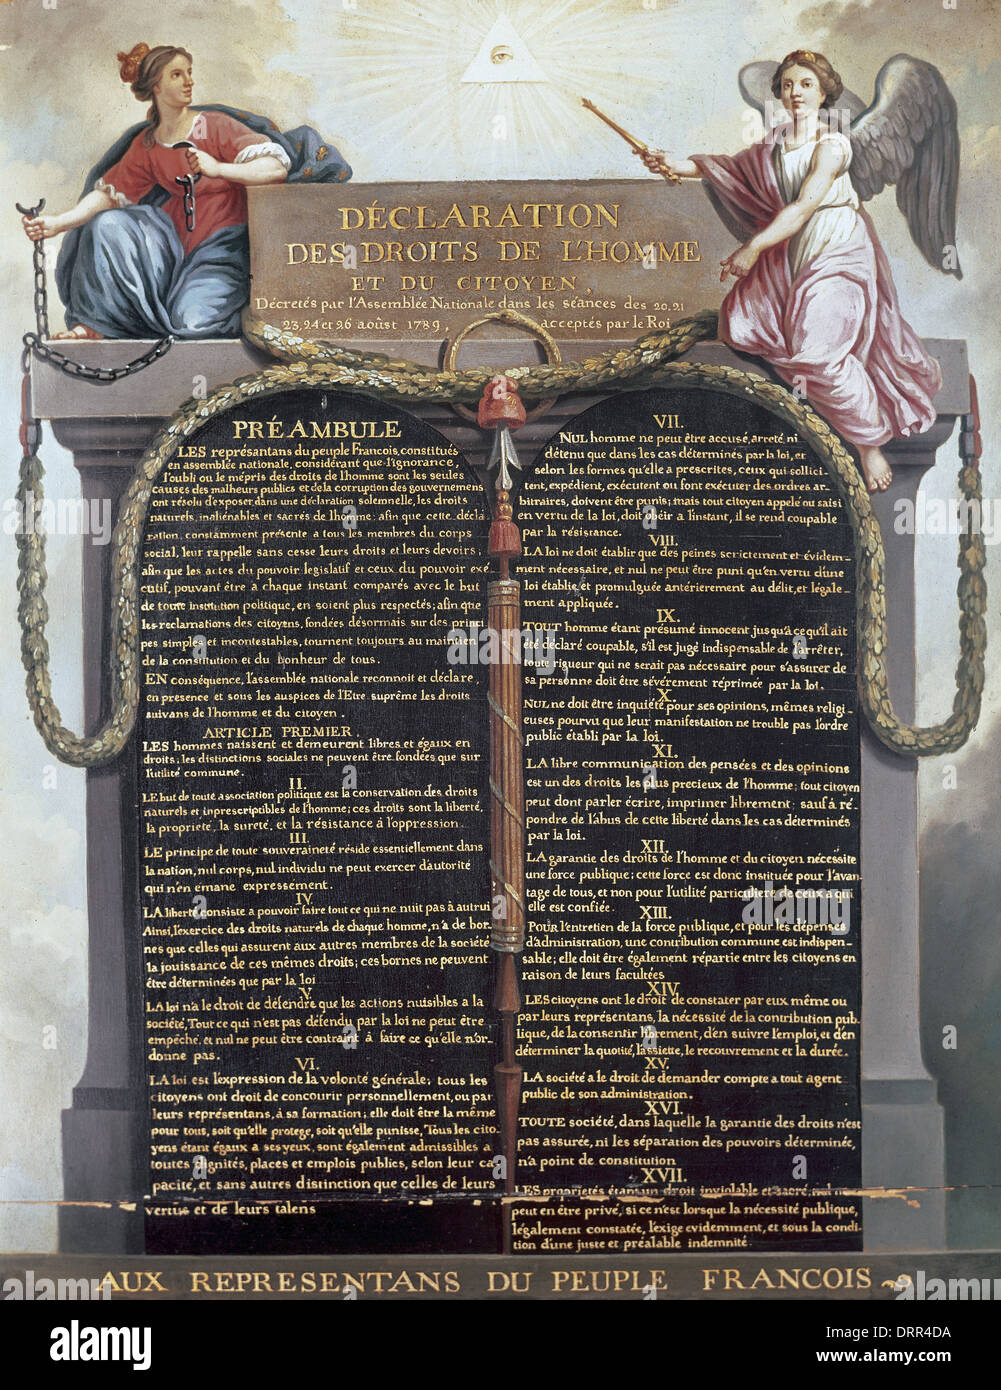 Declaration of the Rights of Man and of the Citizen, August 26, 1789. It is a fundamental document of French Revolution. - Stock Image